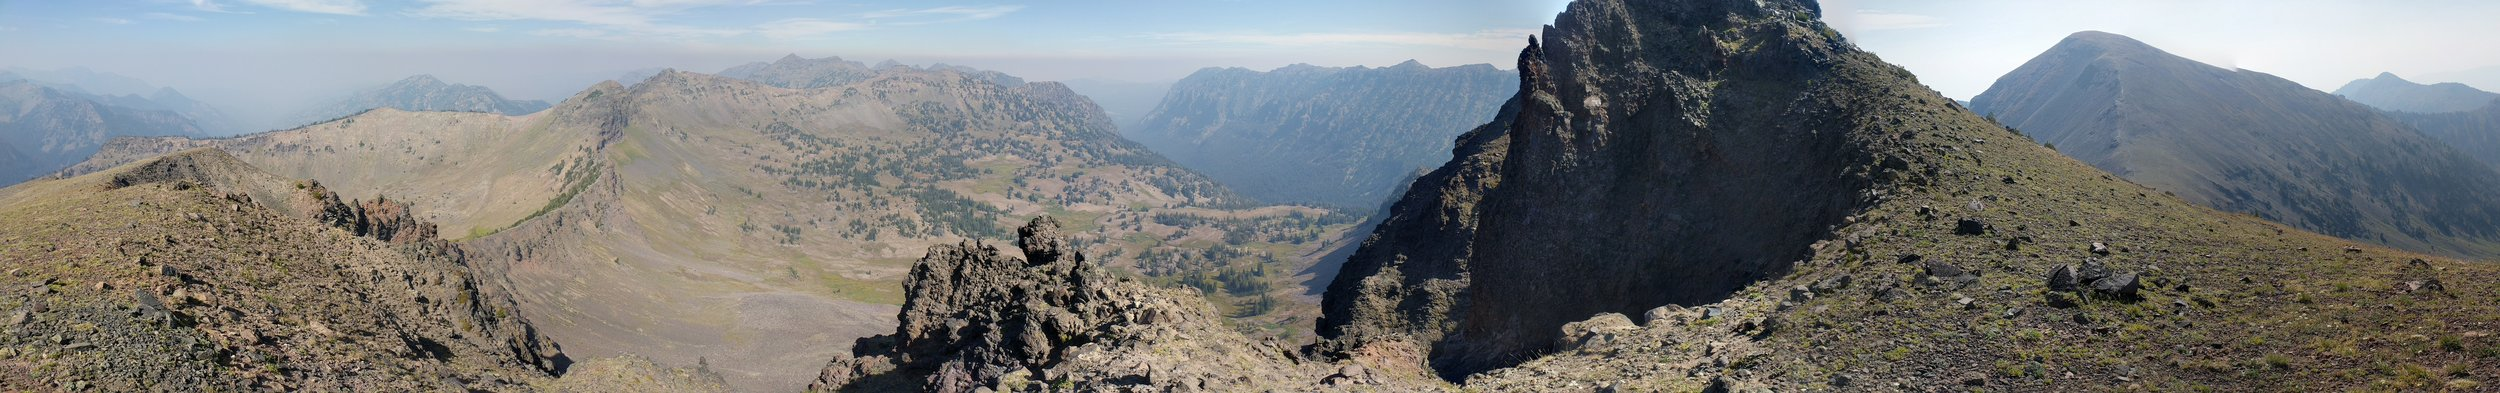 Clockwise, from 12 o'clock: the Hyalite Creek valley, Hyalite Peak (far right), Point 10,201 (center), Point 10,024 (left), Point 10,073, Divide Peak